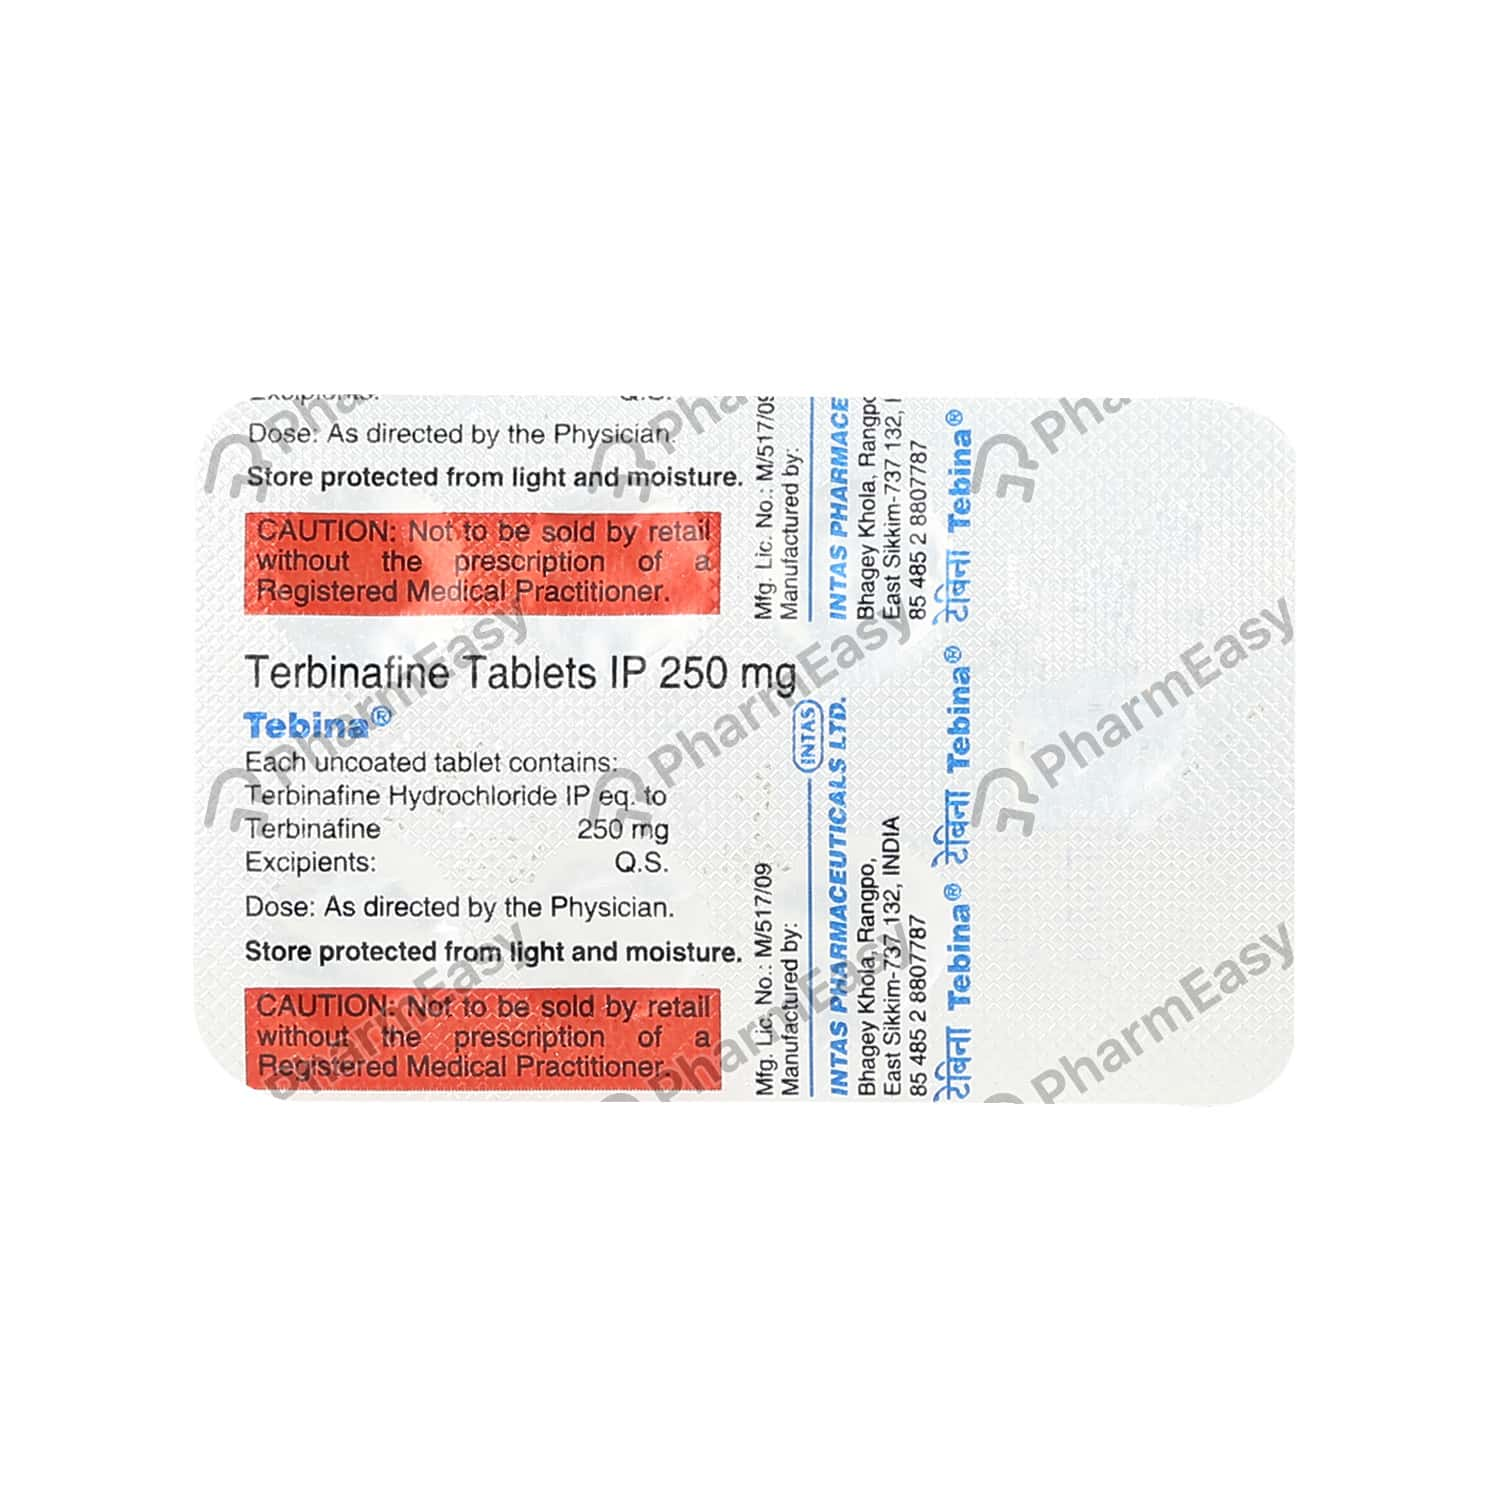 Tebina 250mg Tablet